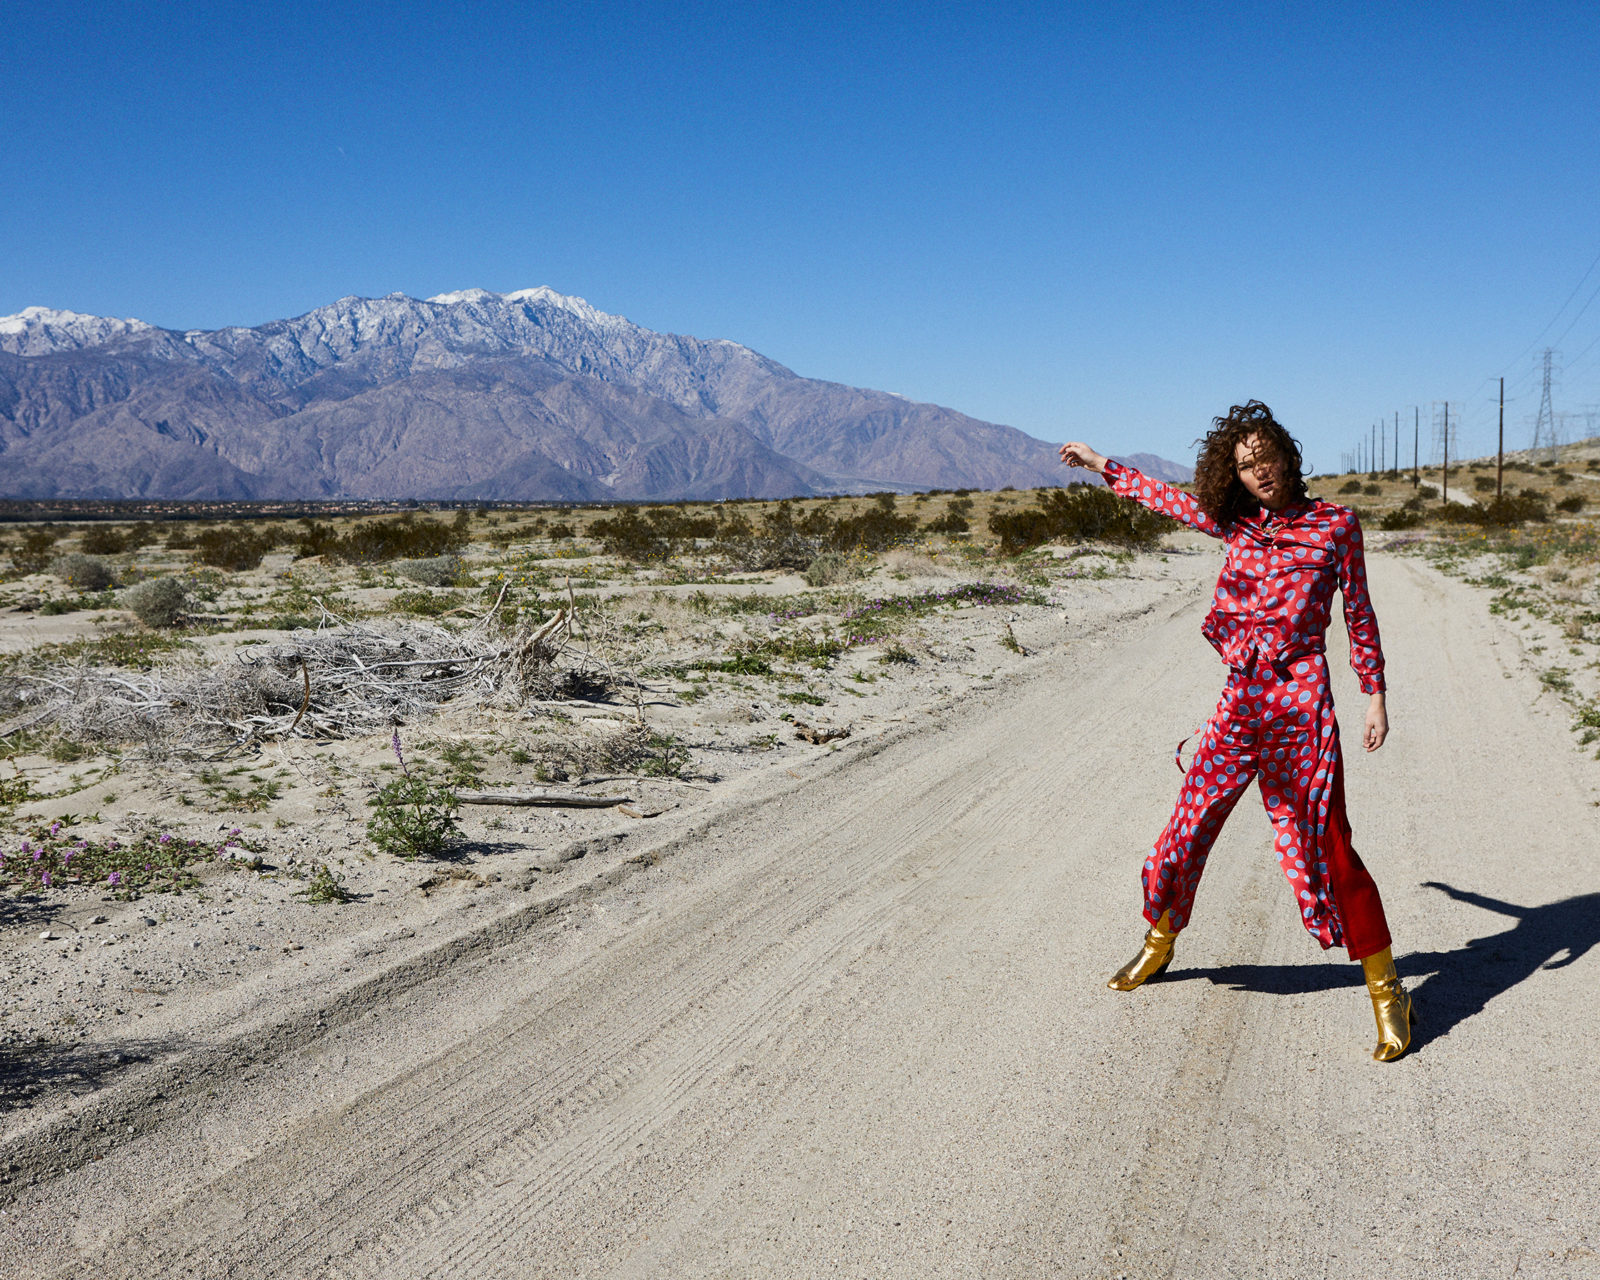 Josh Shinner picture of a woman in pink on an empty road pointing to snowy moutains